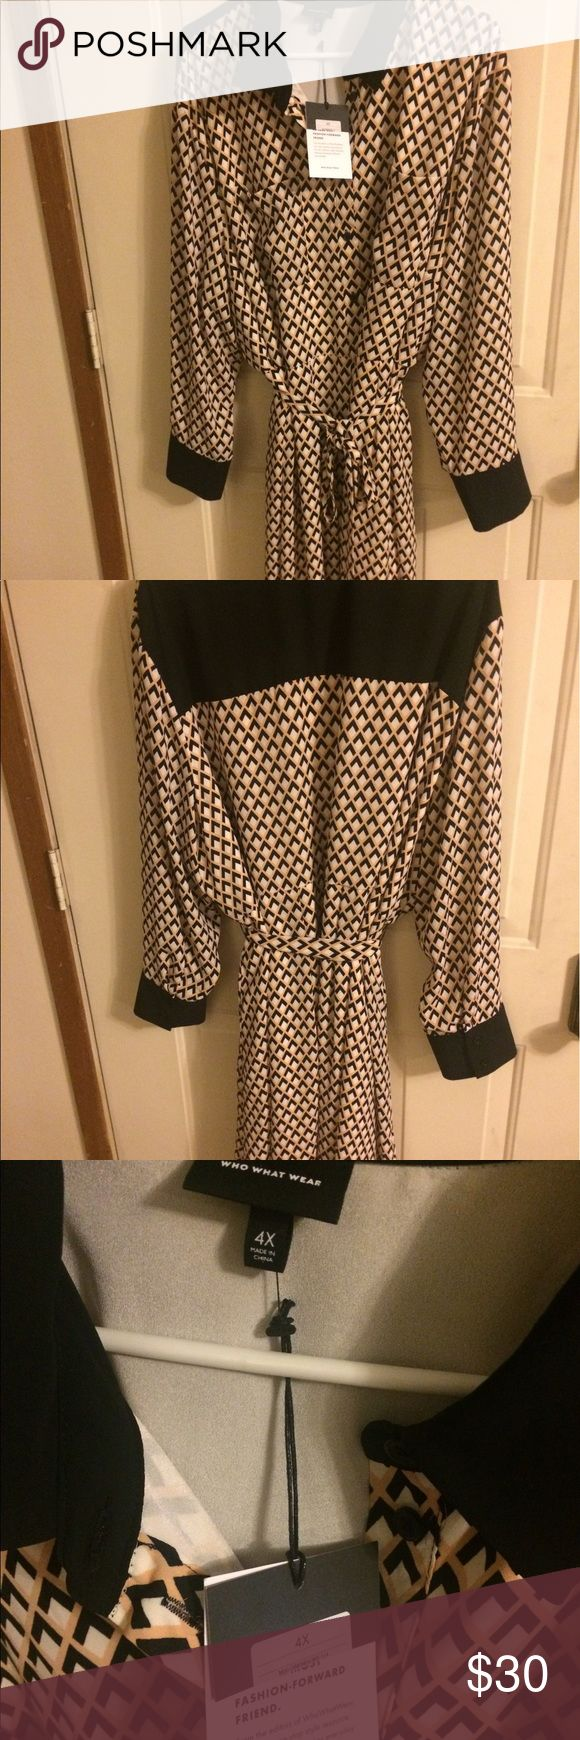 Who What Wear long sleeve dress size 4x Brand new with tags long sleeve flowy dress buttons all the way up includes a little sash/belt that matches has black detailing on the sleeves the collar and back who what wear Dresses Long Sleeve